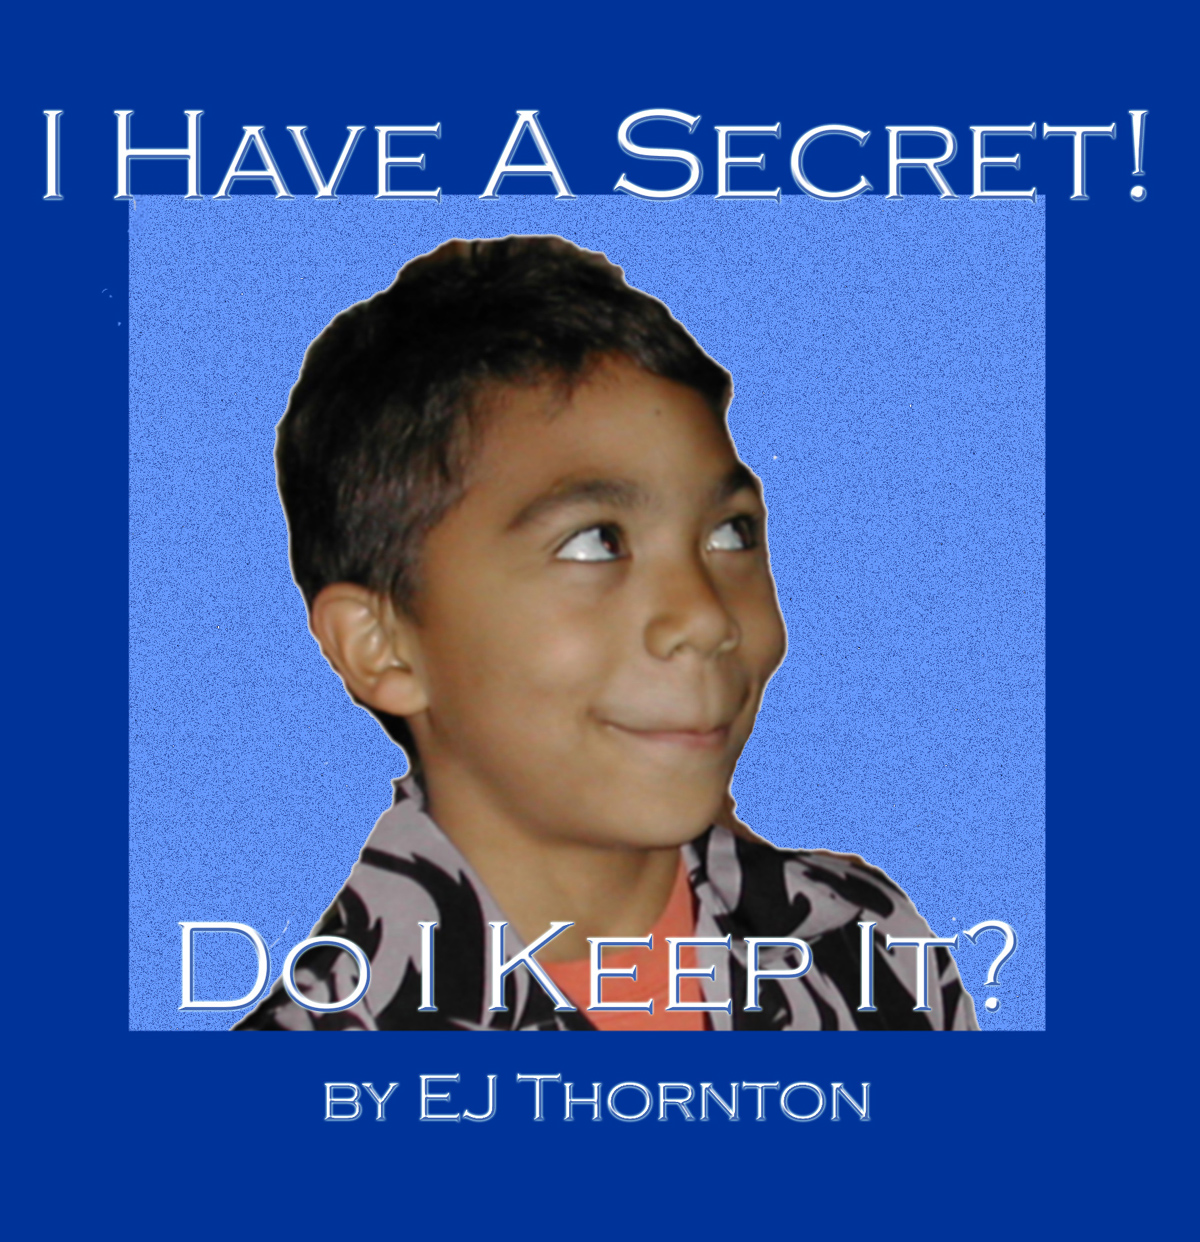 I Have a Secret - Do I Keep It?: Teaching children good decision-making skills: Thornton, EJ: 9781932344660: Amazon.com: Books